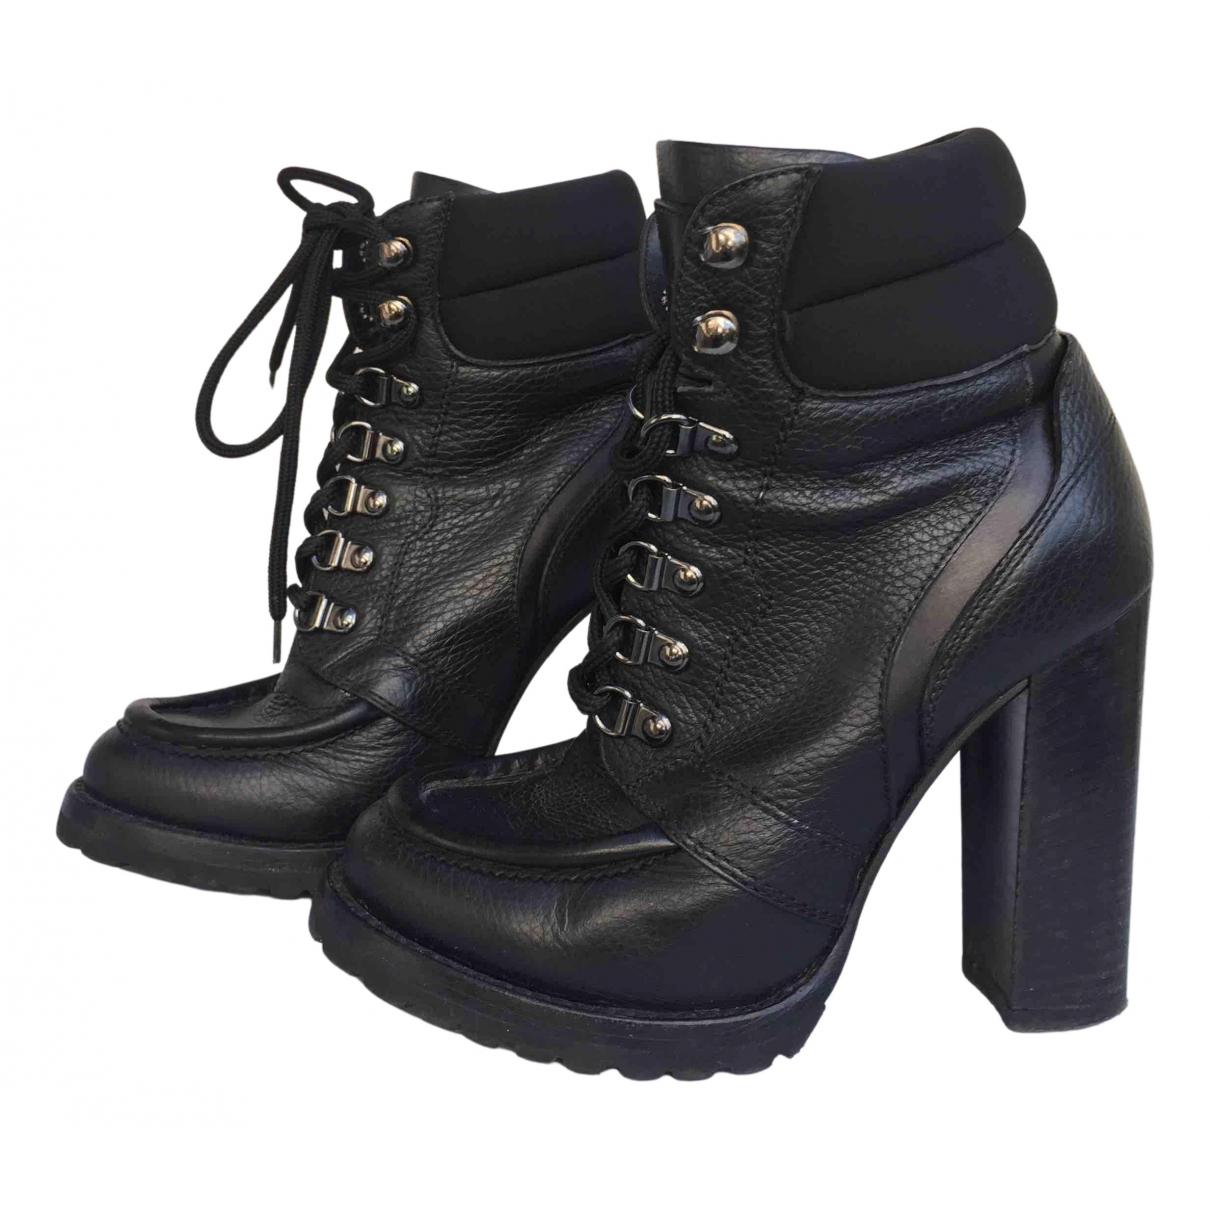 Ermanno Scervino N Black Leather Boots for Women 37 EU